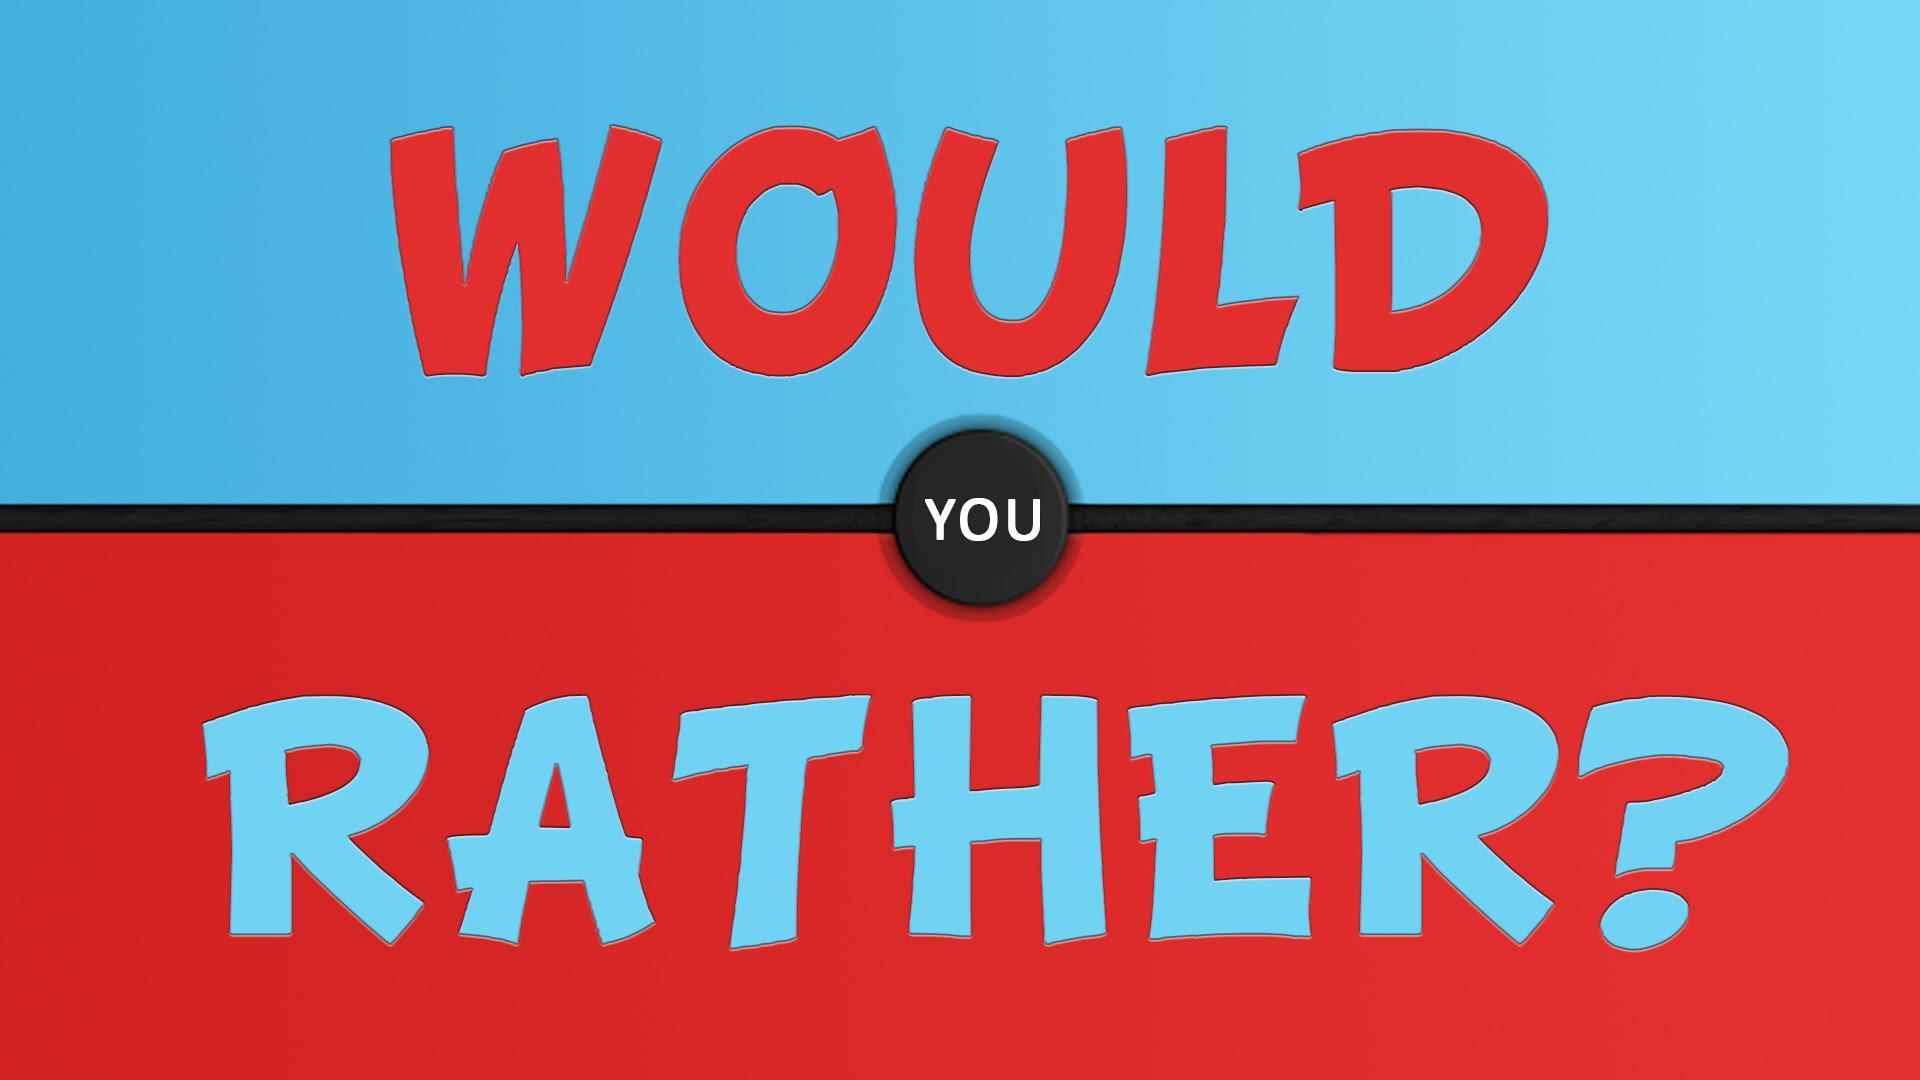 What would you rather do? (10)